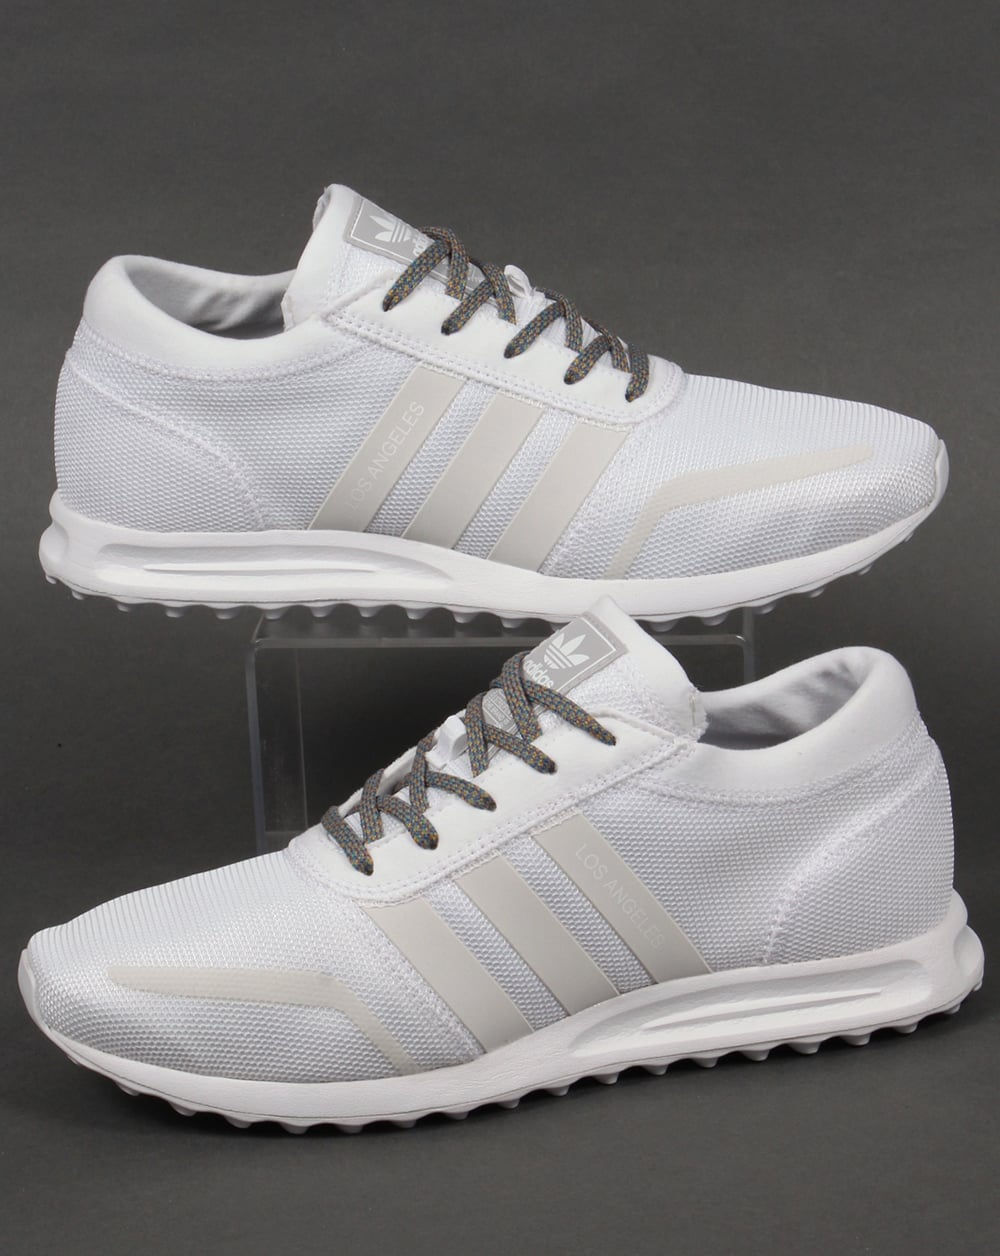 the best attitude 12be1 21f87 adidas Trainers Adidas Los Angeles Trainers WhiteWhiteGrey